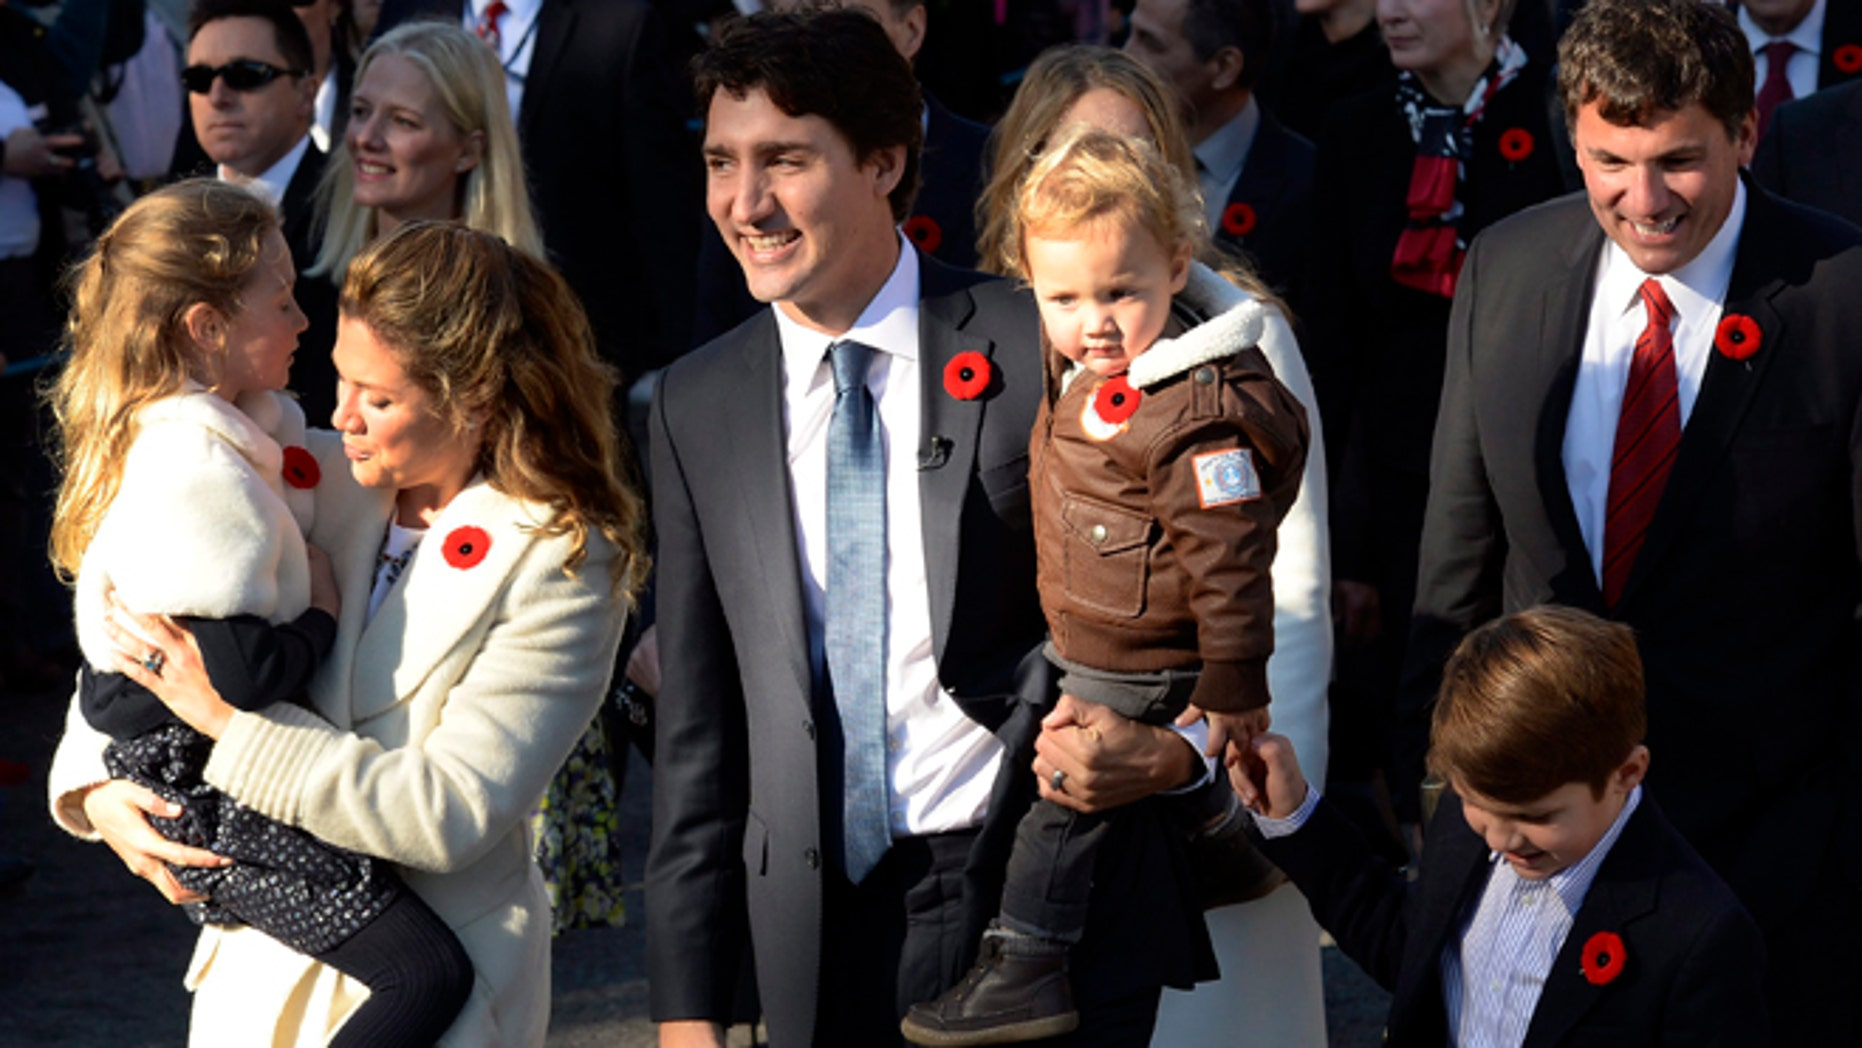 Nov. 4, 2015: Prime Minister-designate Justin Trudeau, his wife Sophie Gregoire-Trudeau and their children Ella-Grace, Hadrien and Xavier lead the new Liberal cabinet to Rideau Hall in Ottawa.